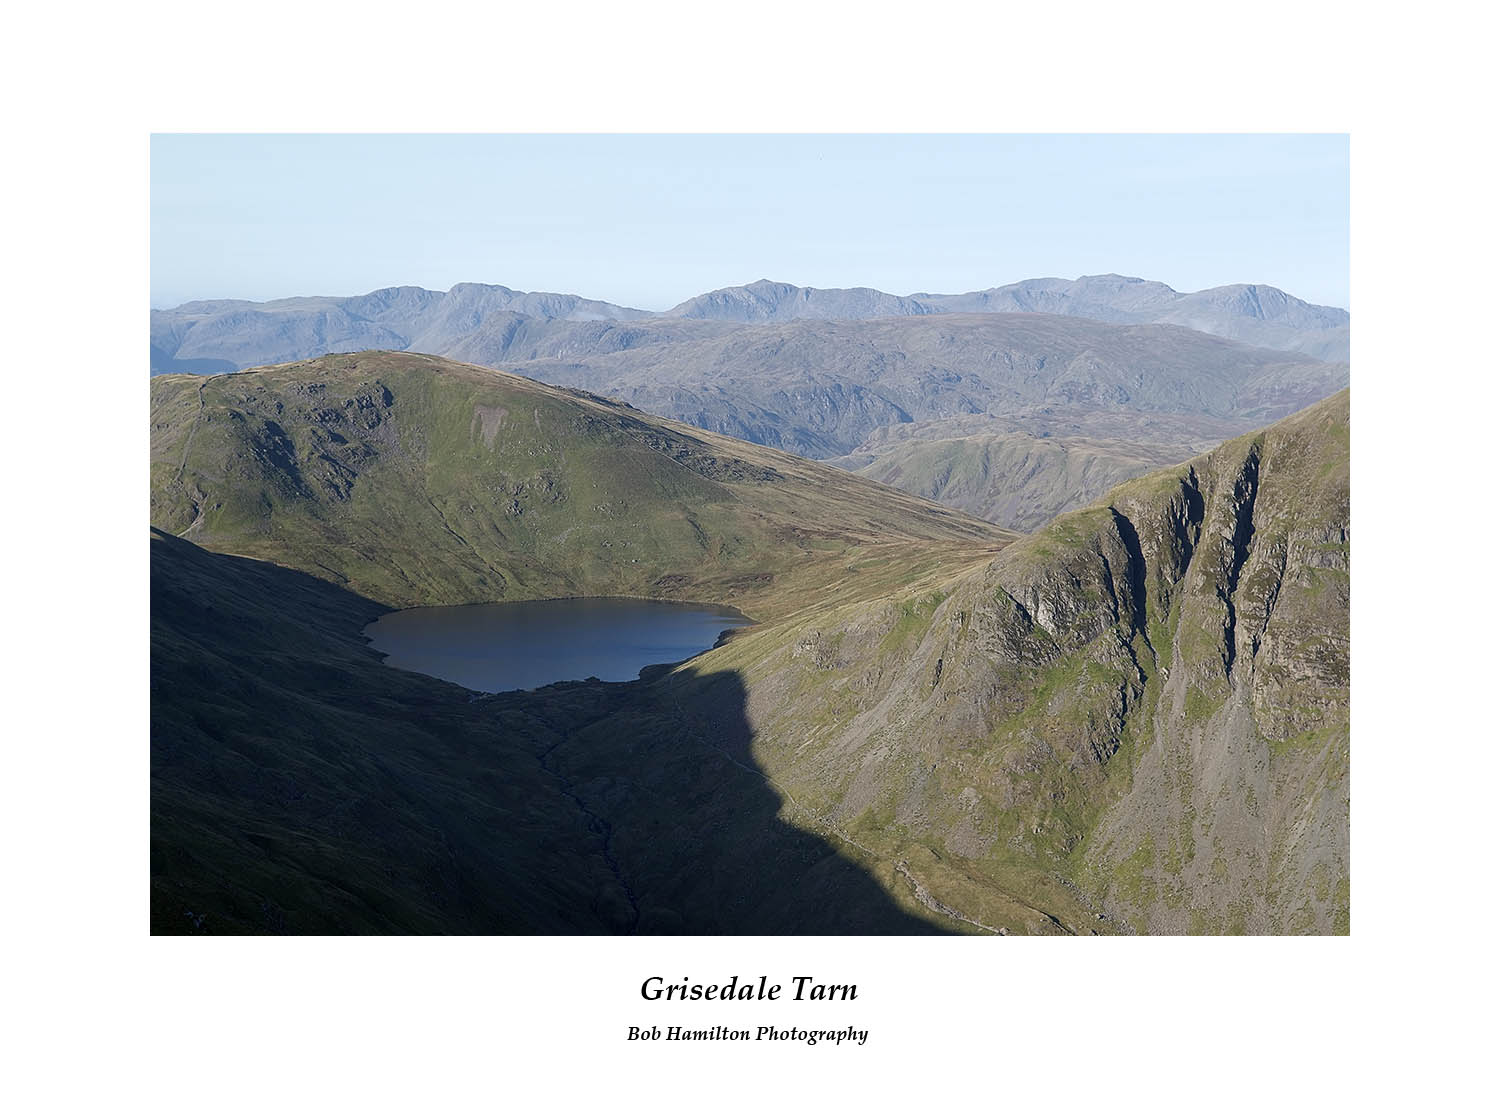 DSF1025 Grisedale Tarn and Seat Sandal from Deepdale Hause